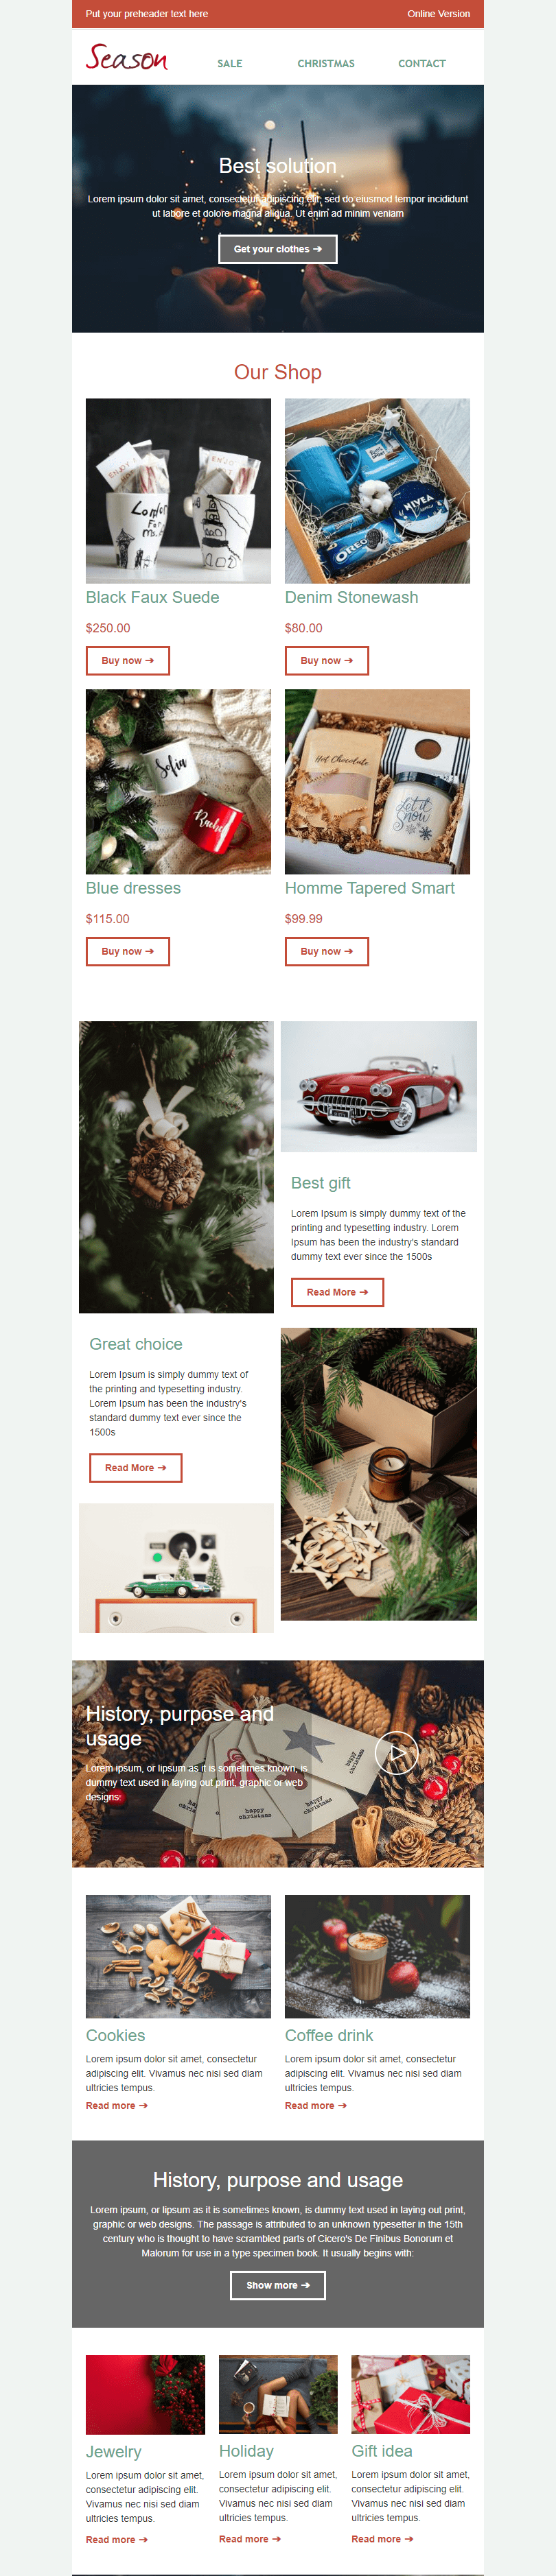 Promo Email Template «Seasonal Shop» for Gifts & Flowers industry desktop view